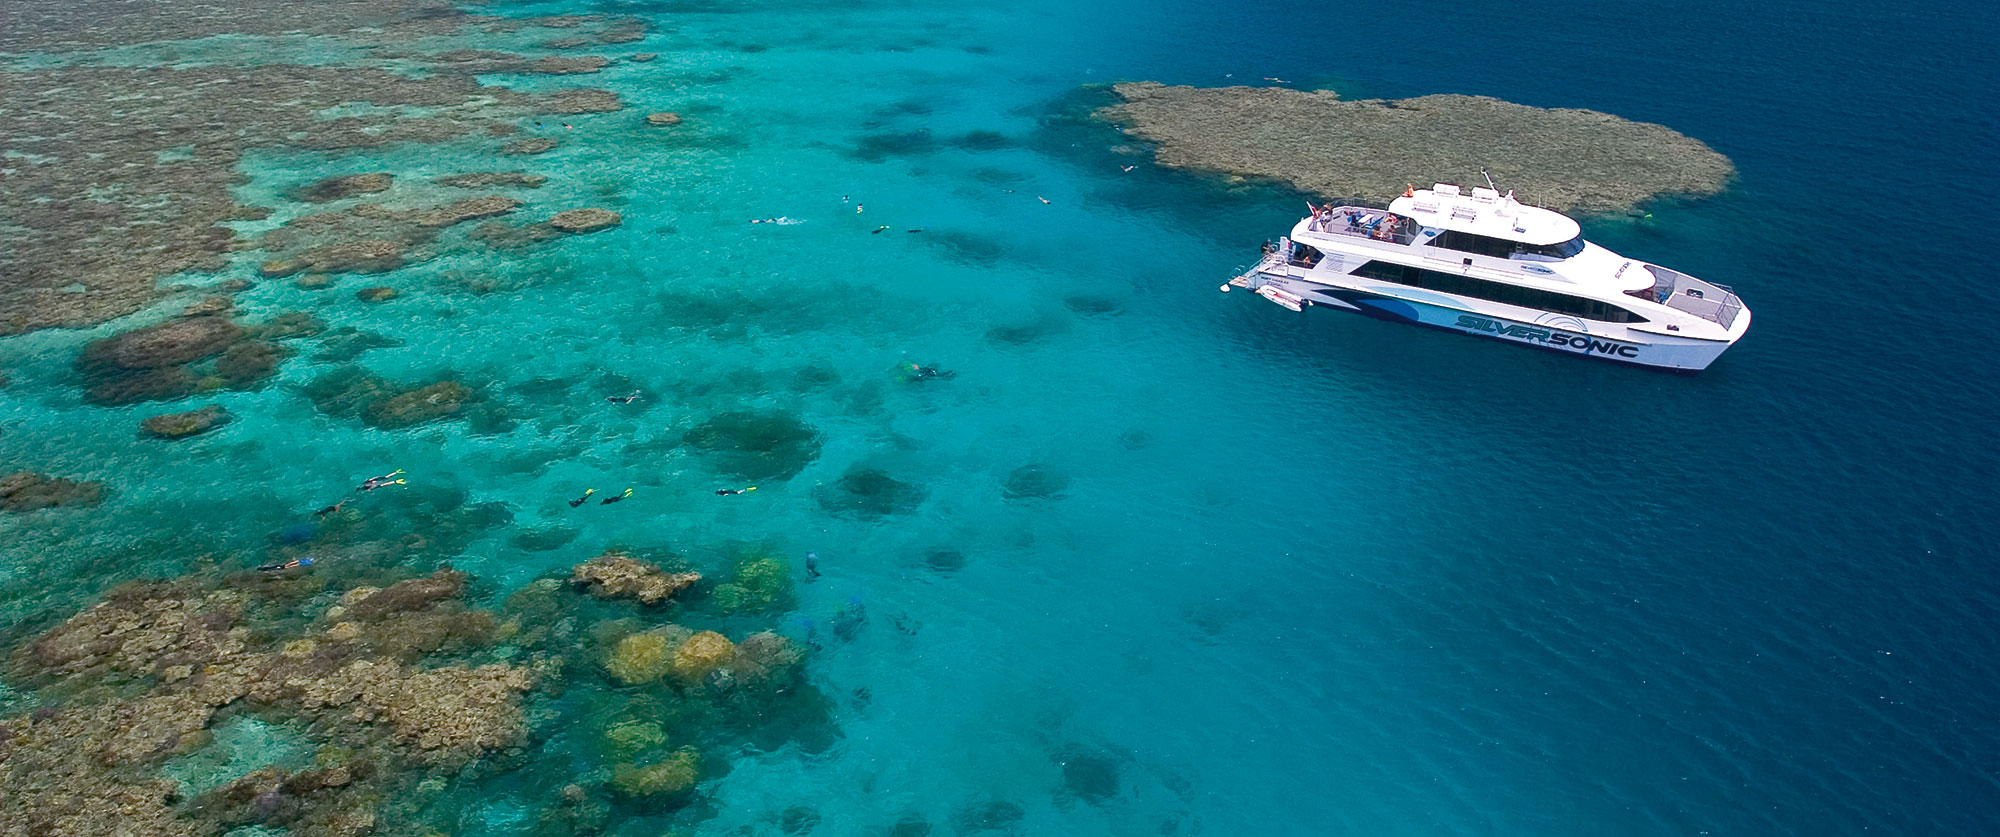 Ultimate Family Vacation Australia - Great Barrier Reef